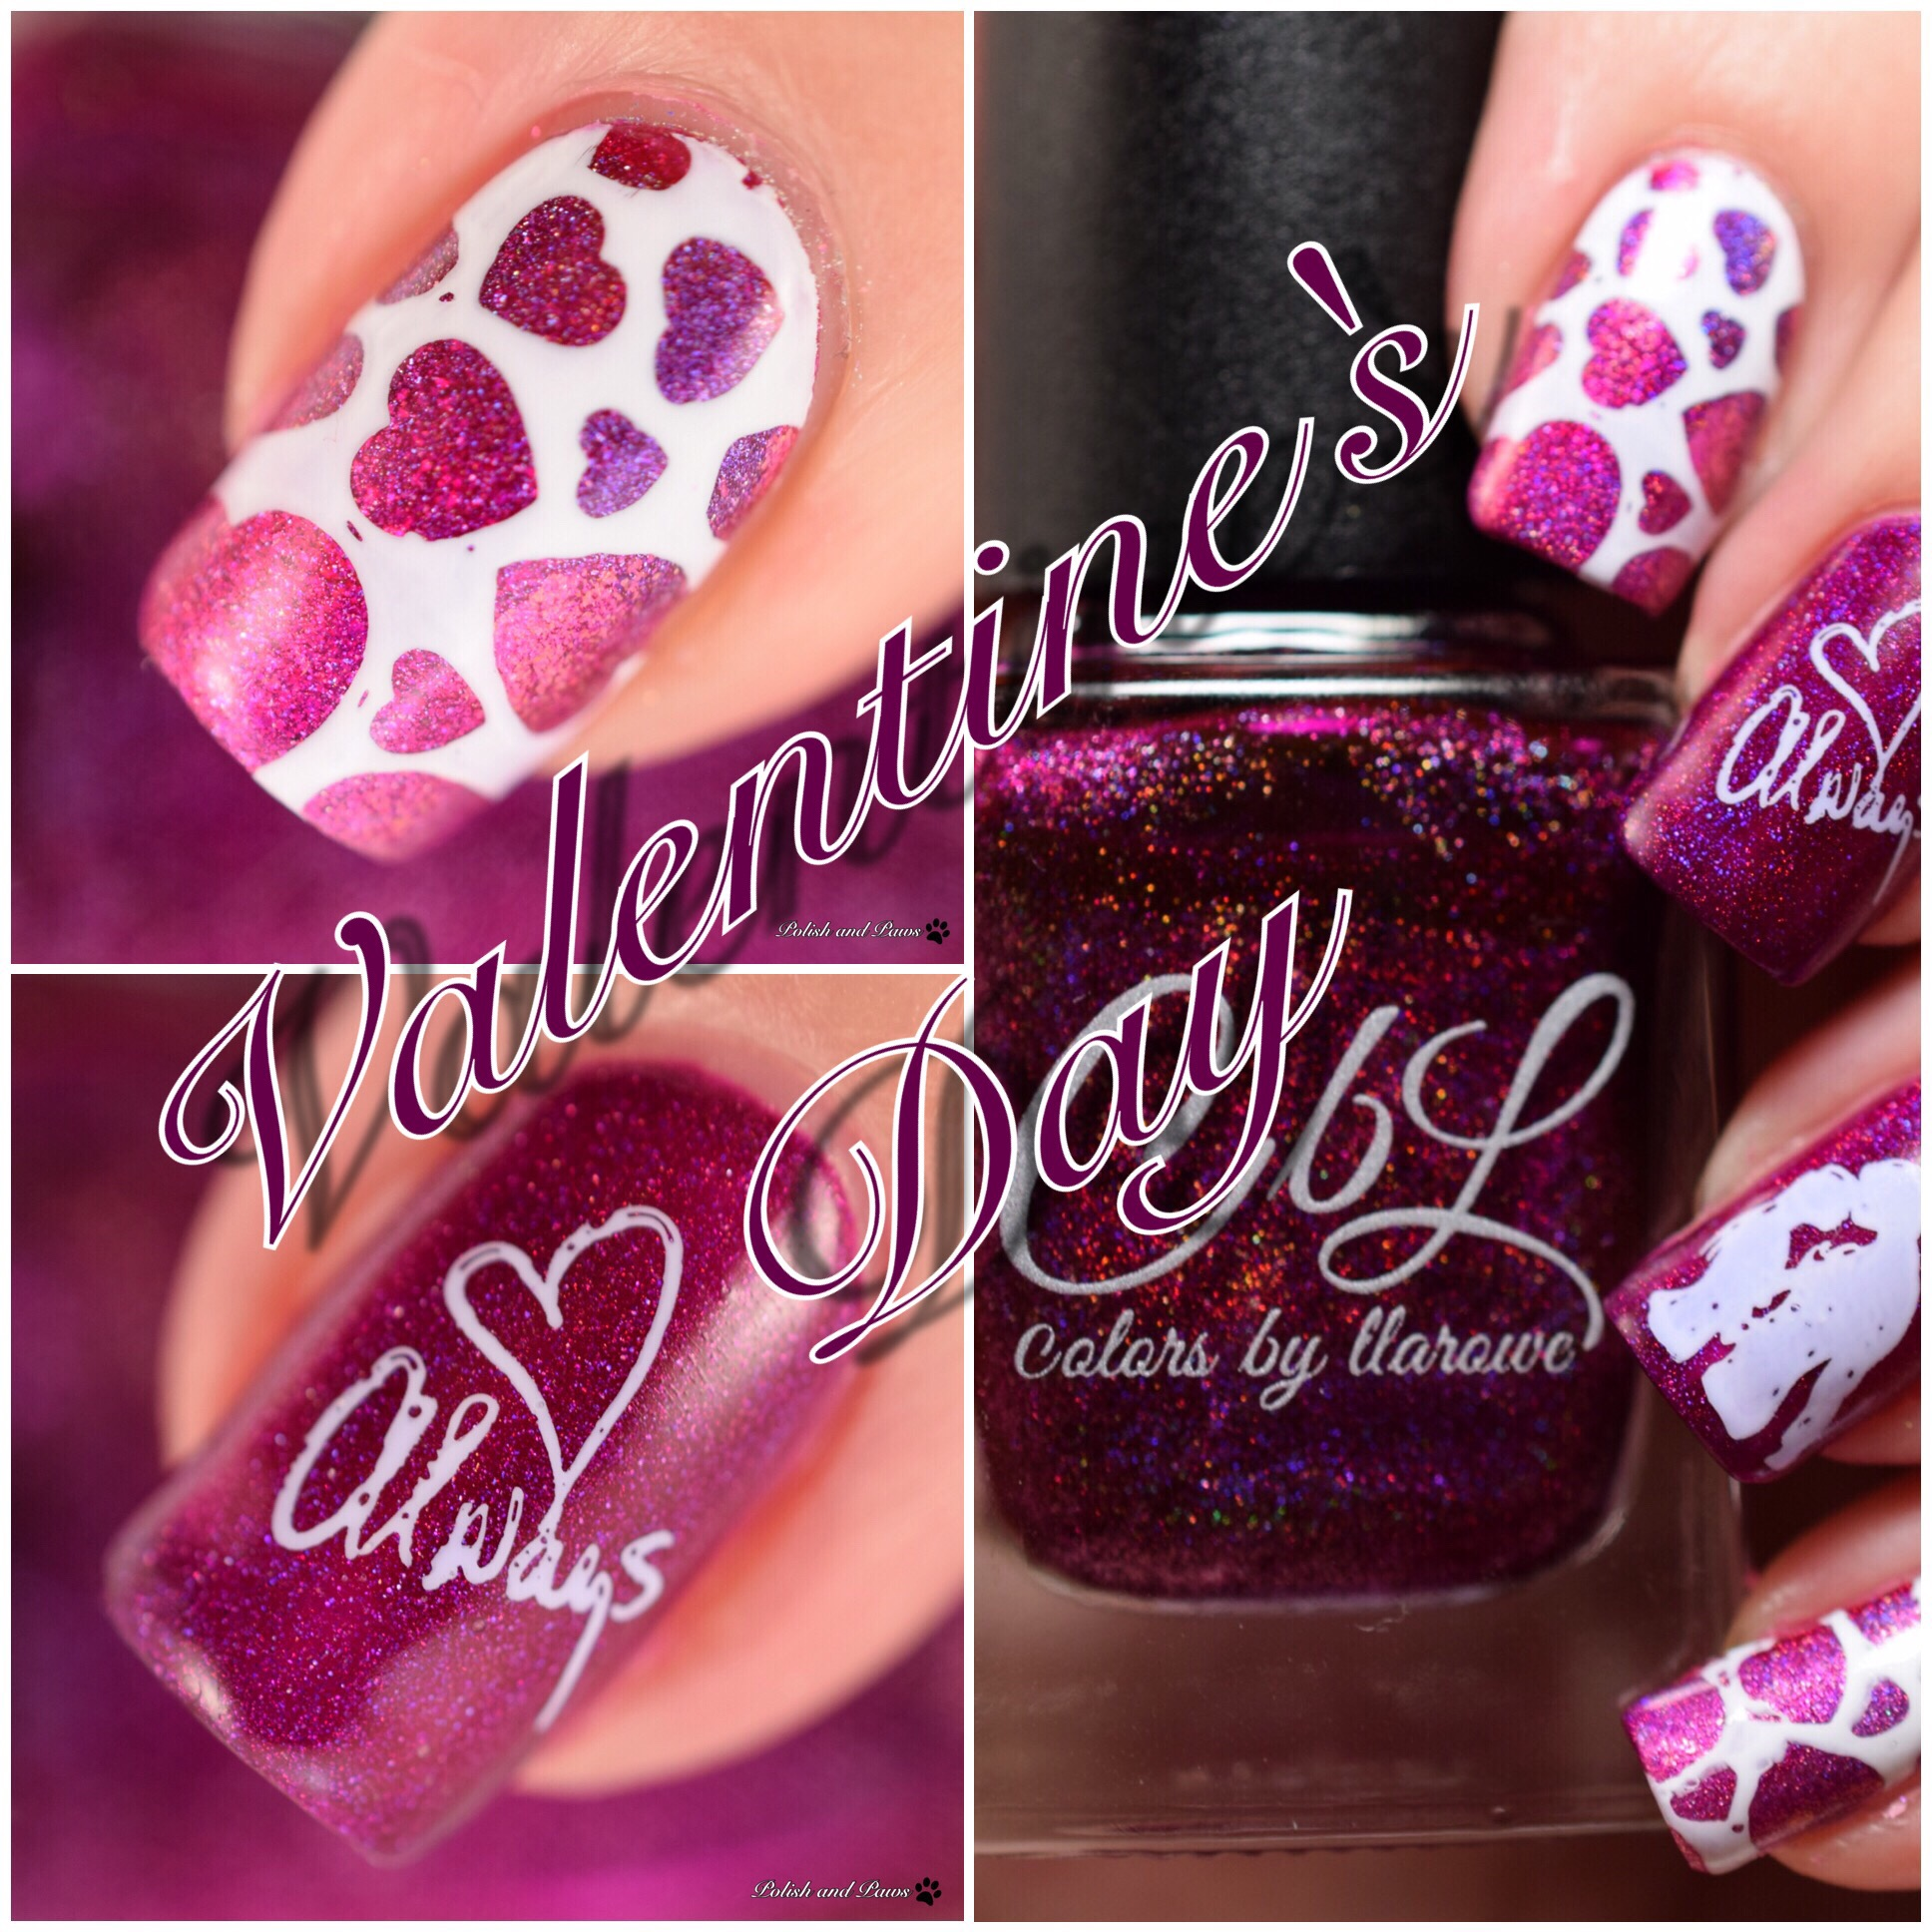 Colors by Llarowe Valentine's Day Nail Art